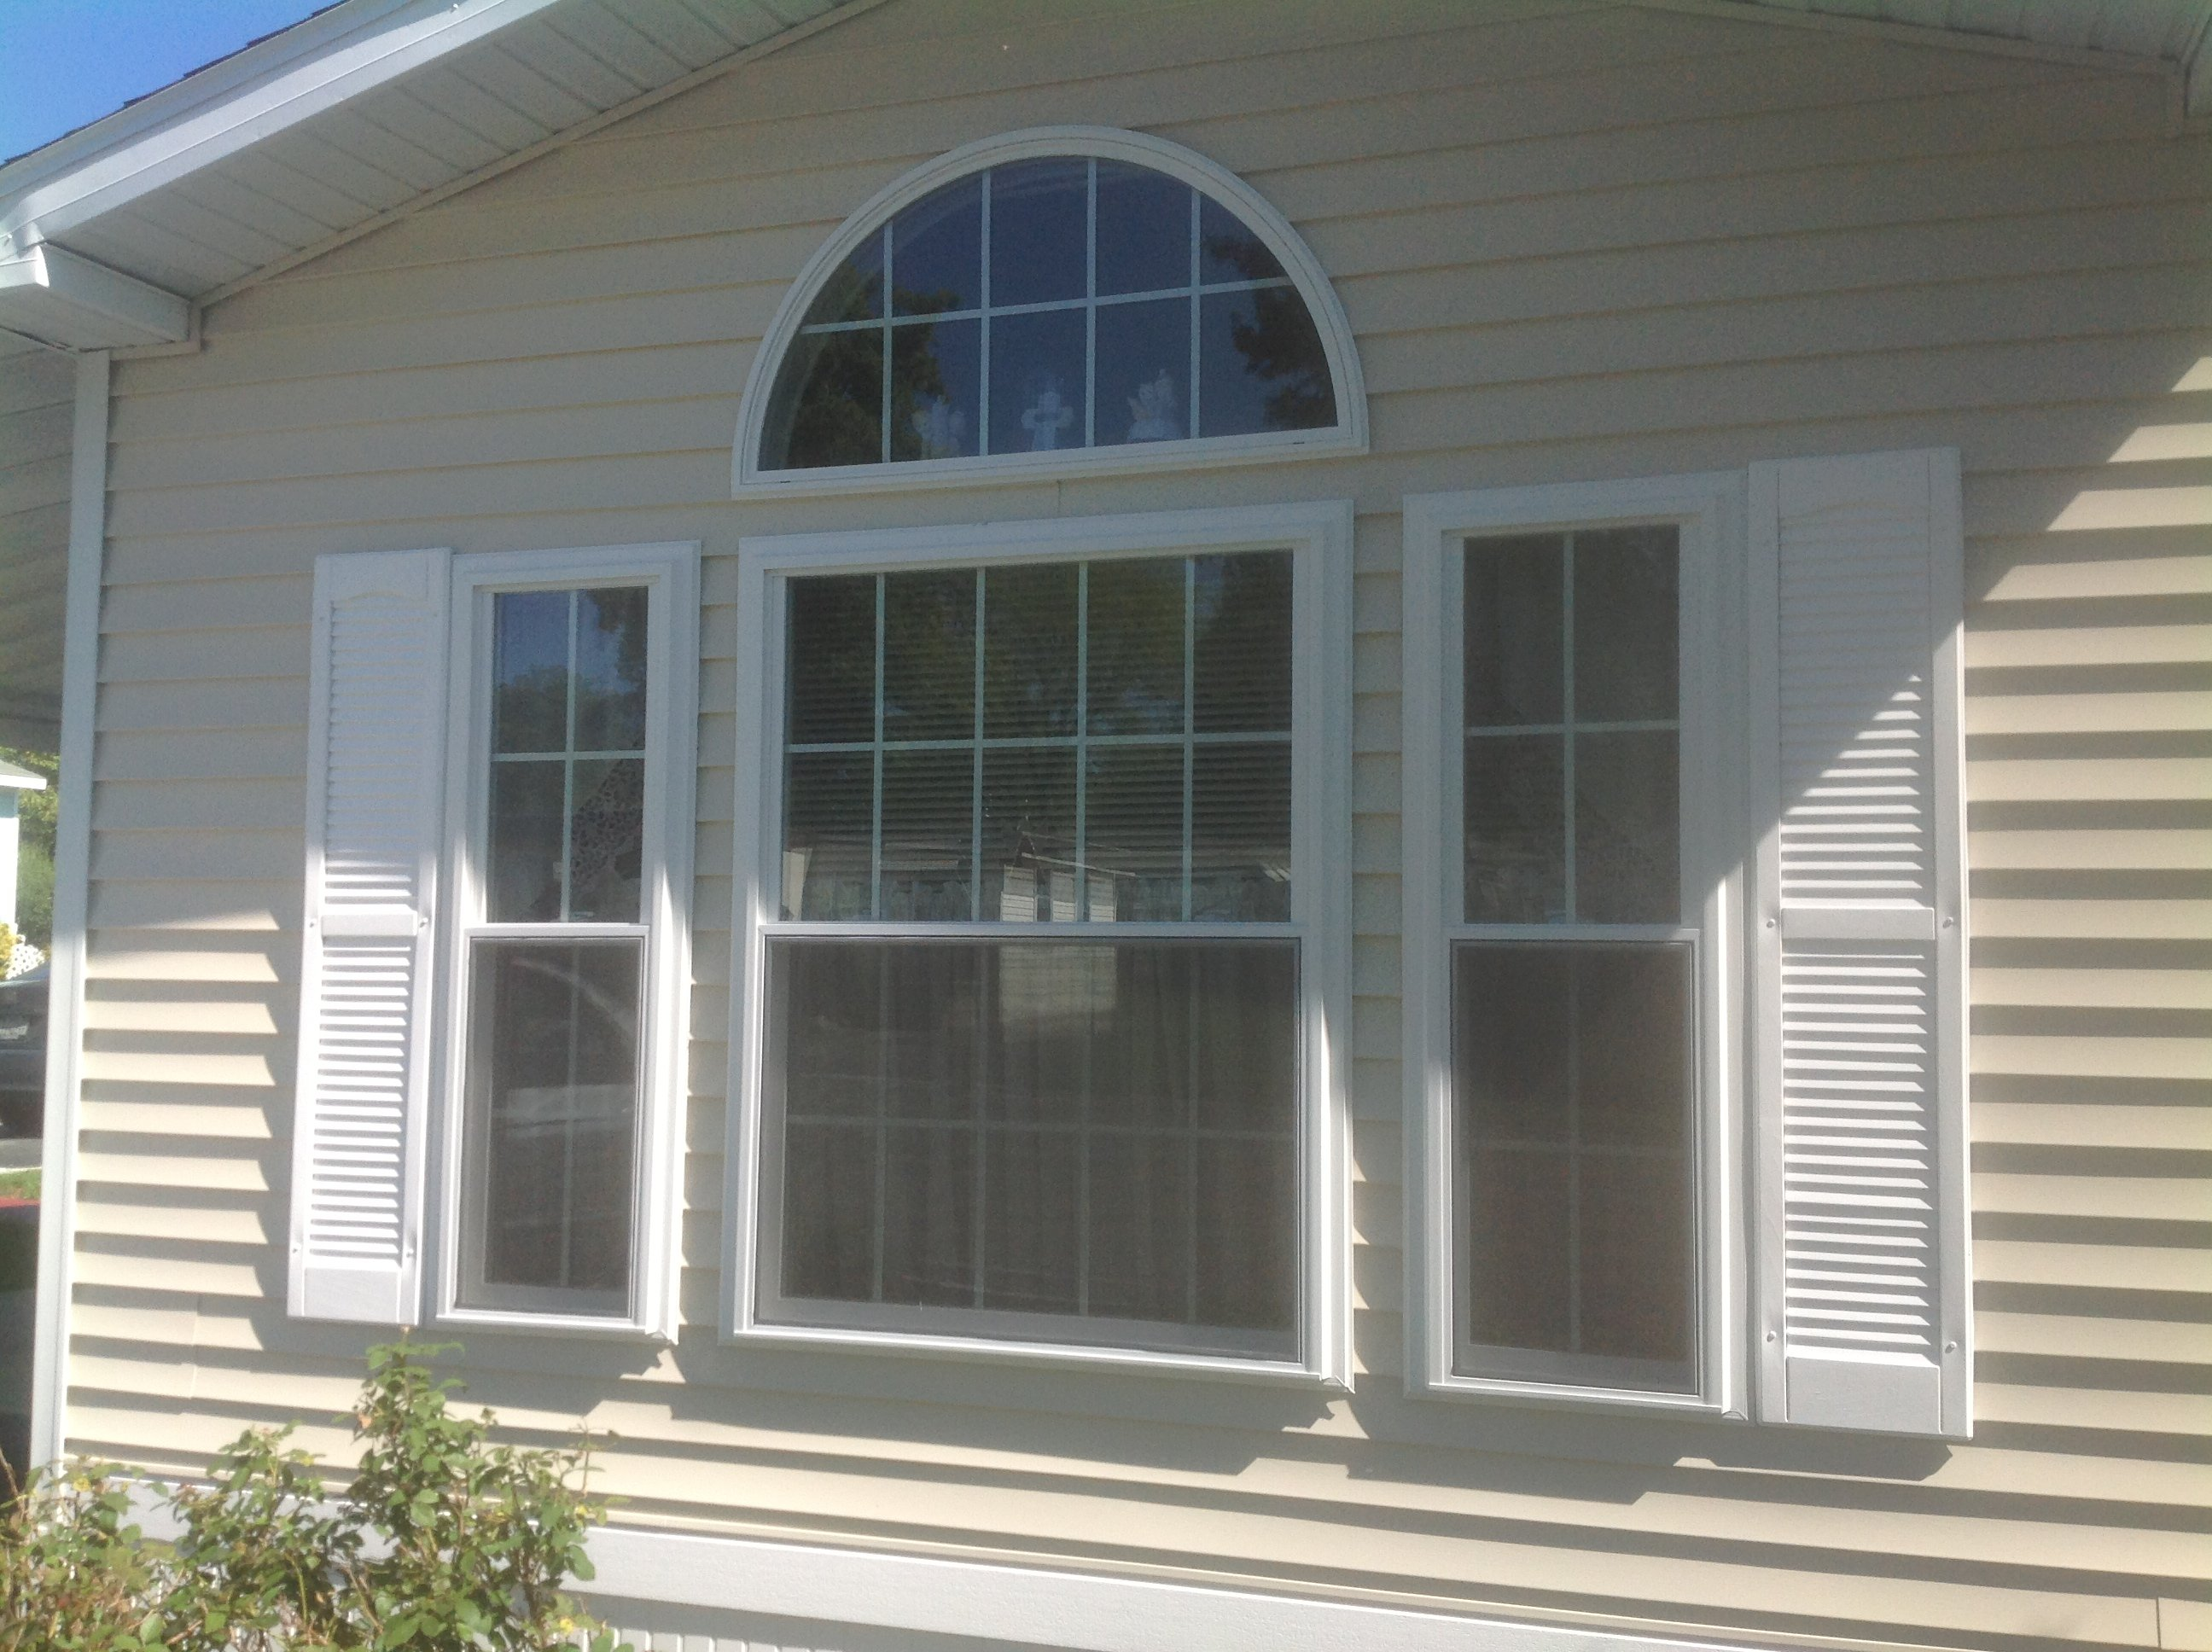 Window Styles for Your Home